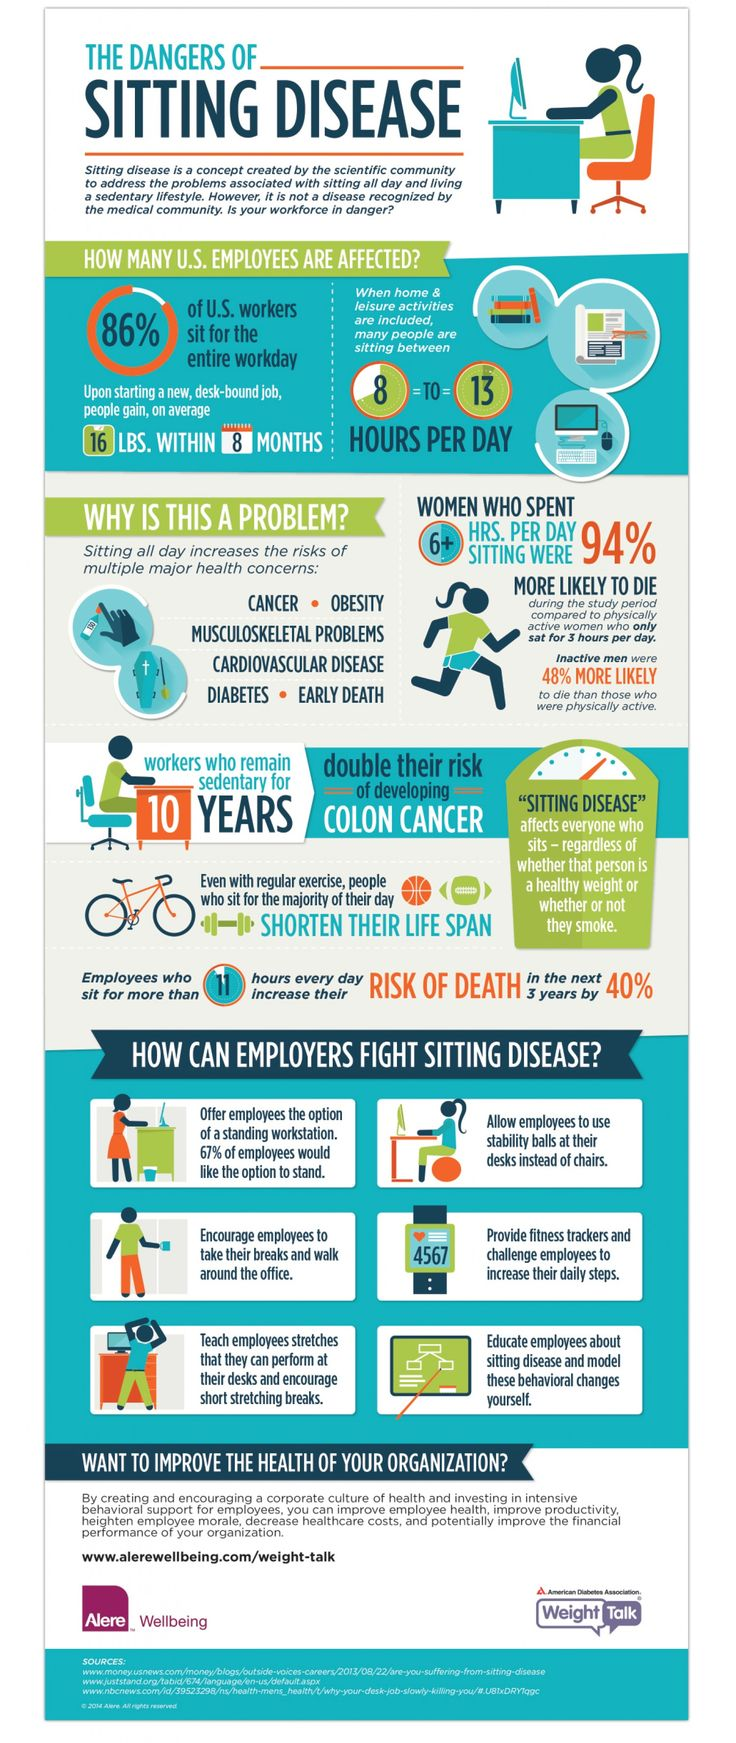 The Dangers of Sitting Disease sittingdisease Health